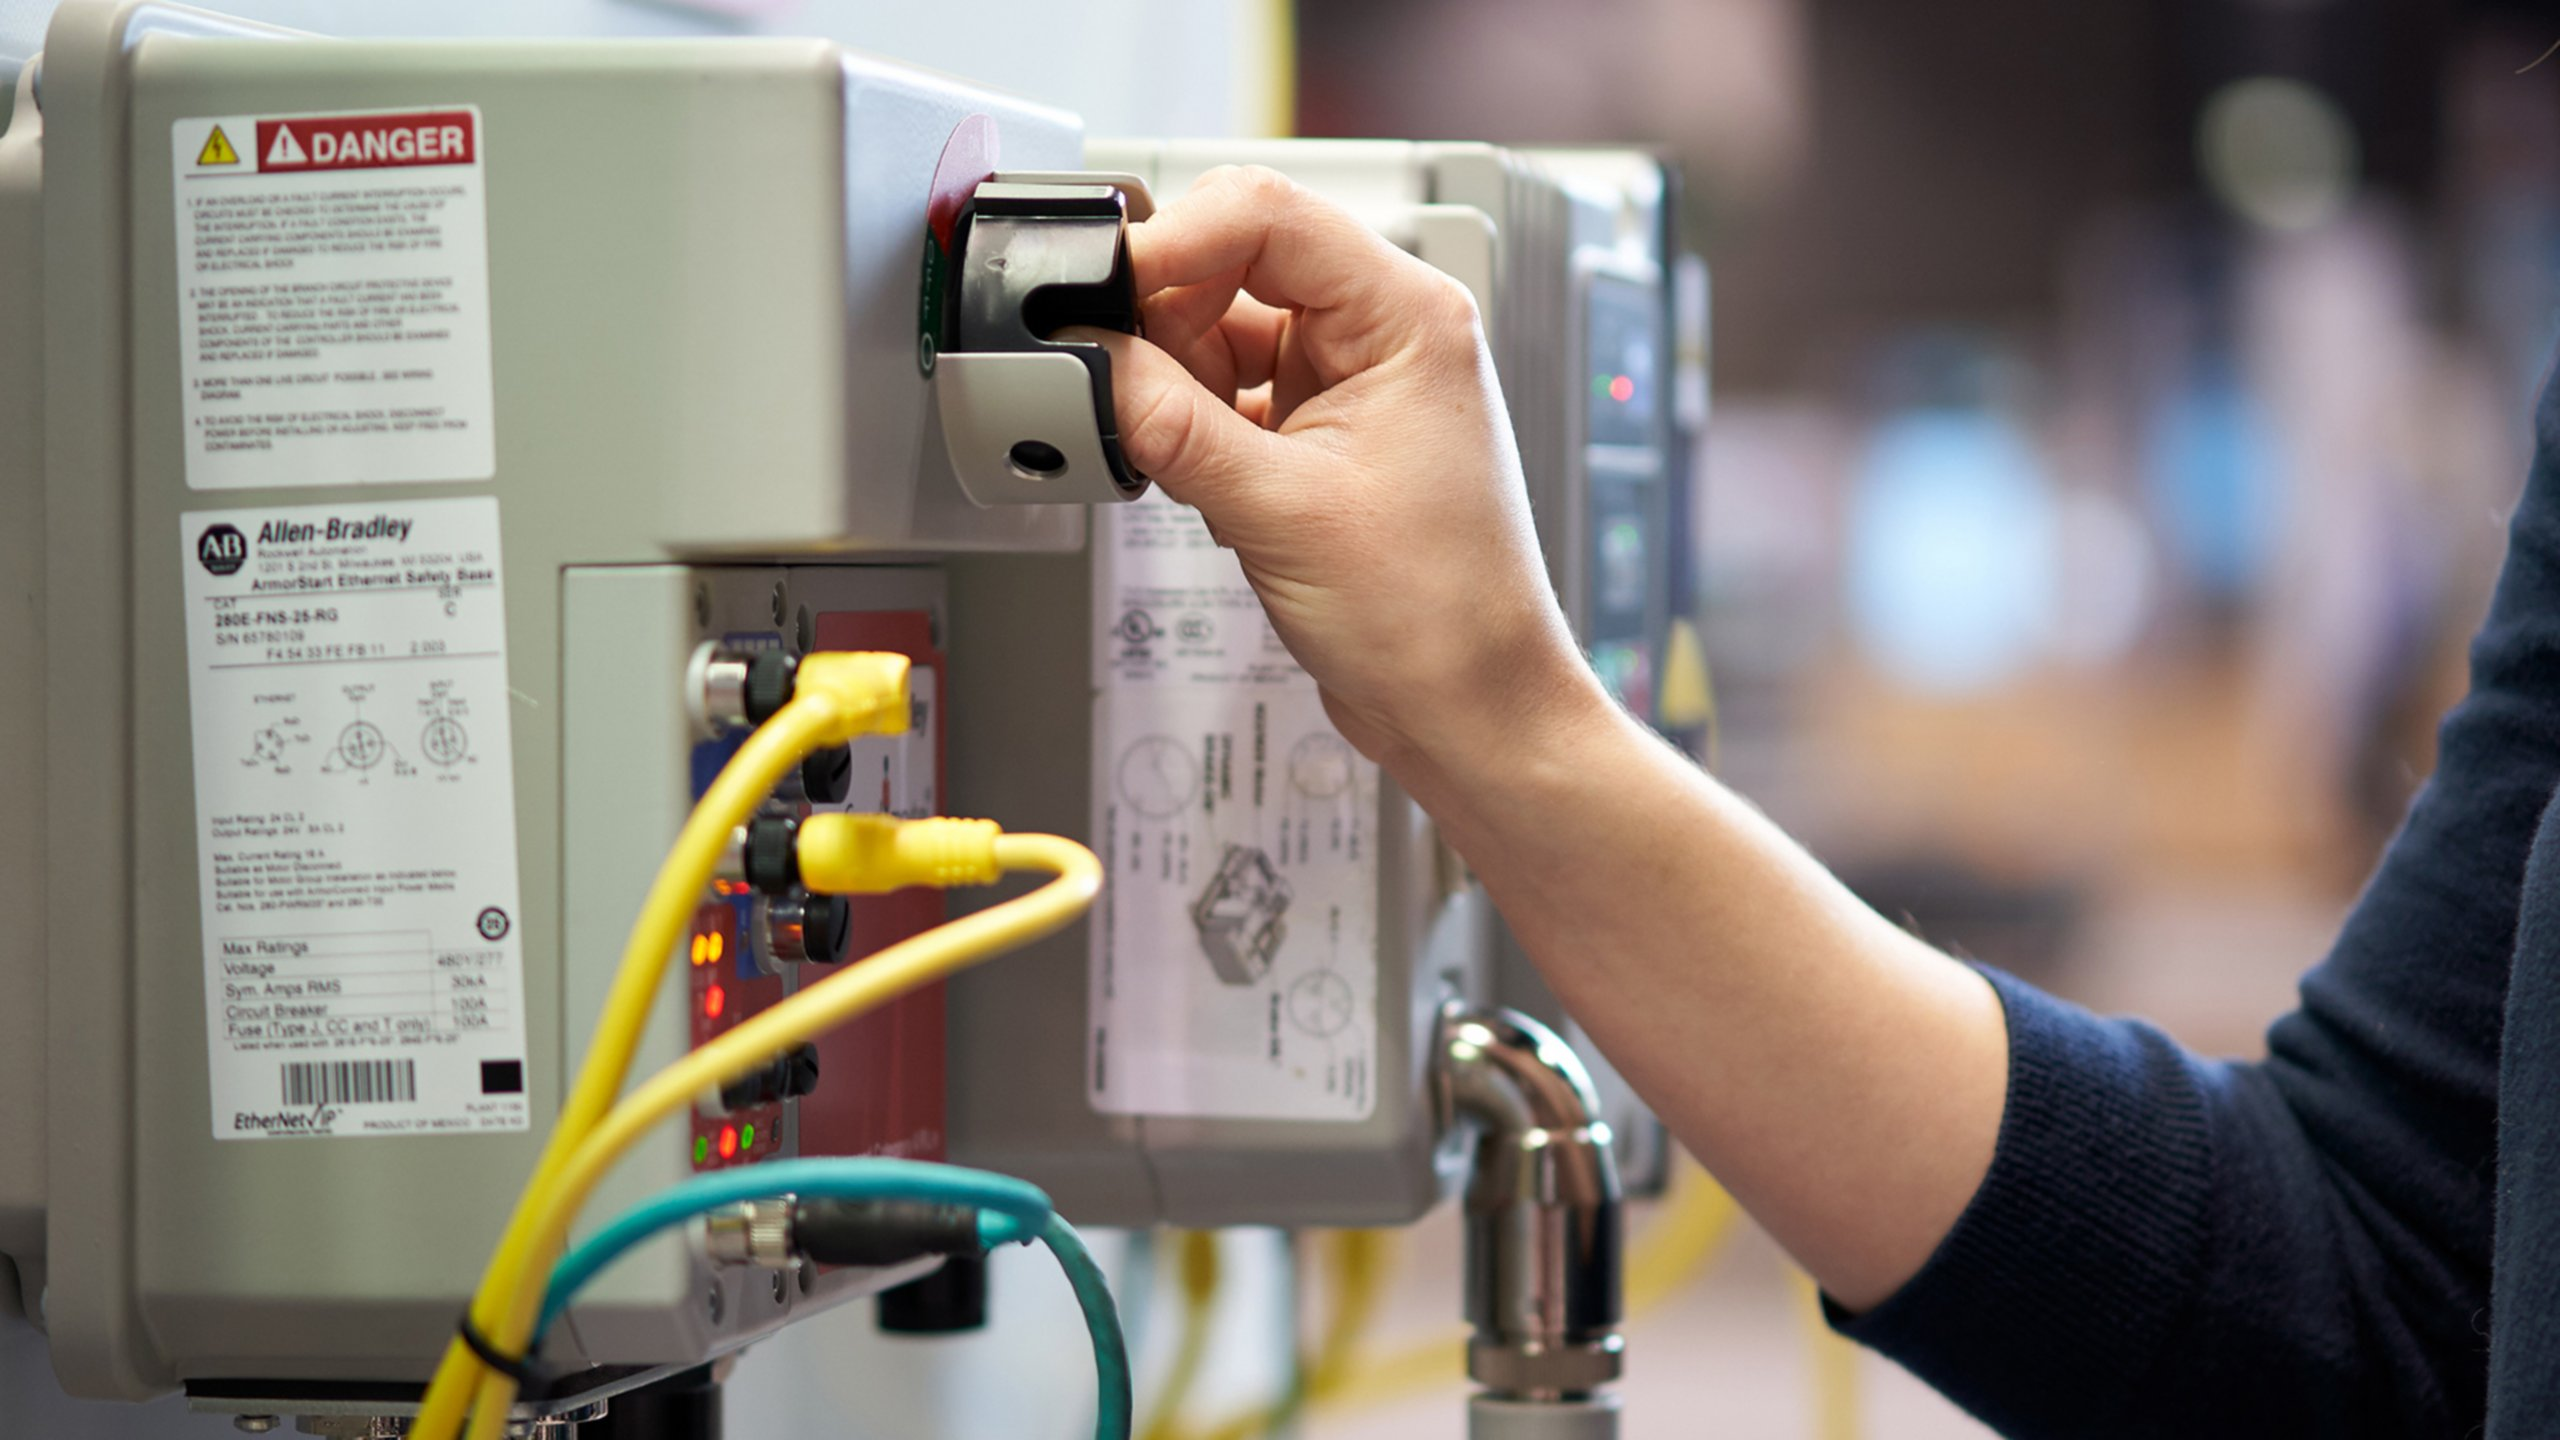 Female hand using a switch in a manufacturing environment